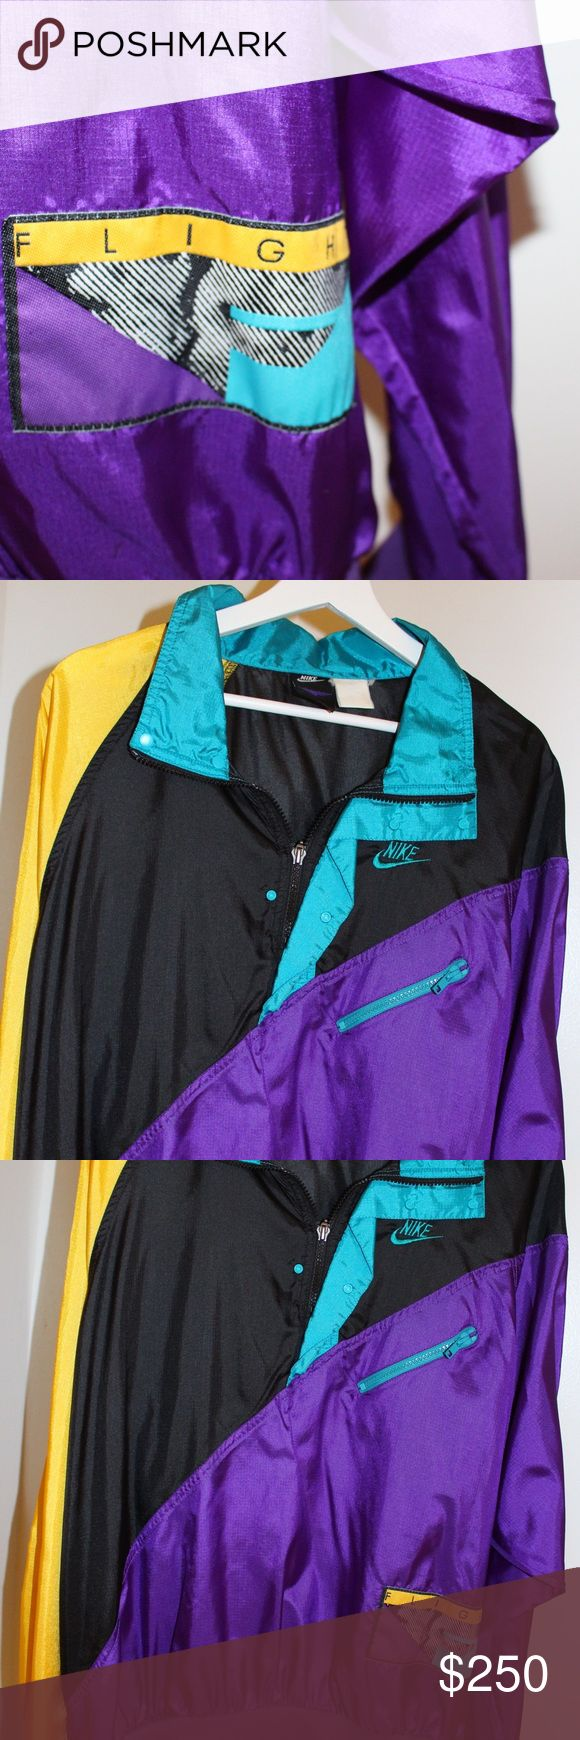 VINTAGE NIKE FLIGHT AIR JORDAN WINDBREAKER Vintage Nike Flight Air Jordan Windbreaker. Great condition. Care label is slightly faded, but that's about it. Let me know if you would like to receive additional images/ info! (-: Nike Jackets & Coats